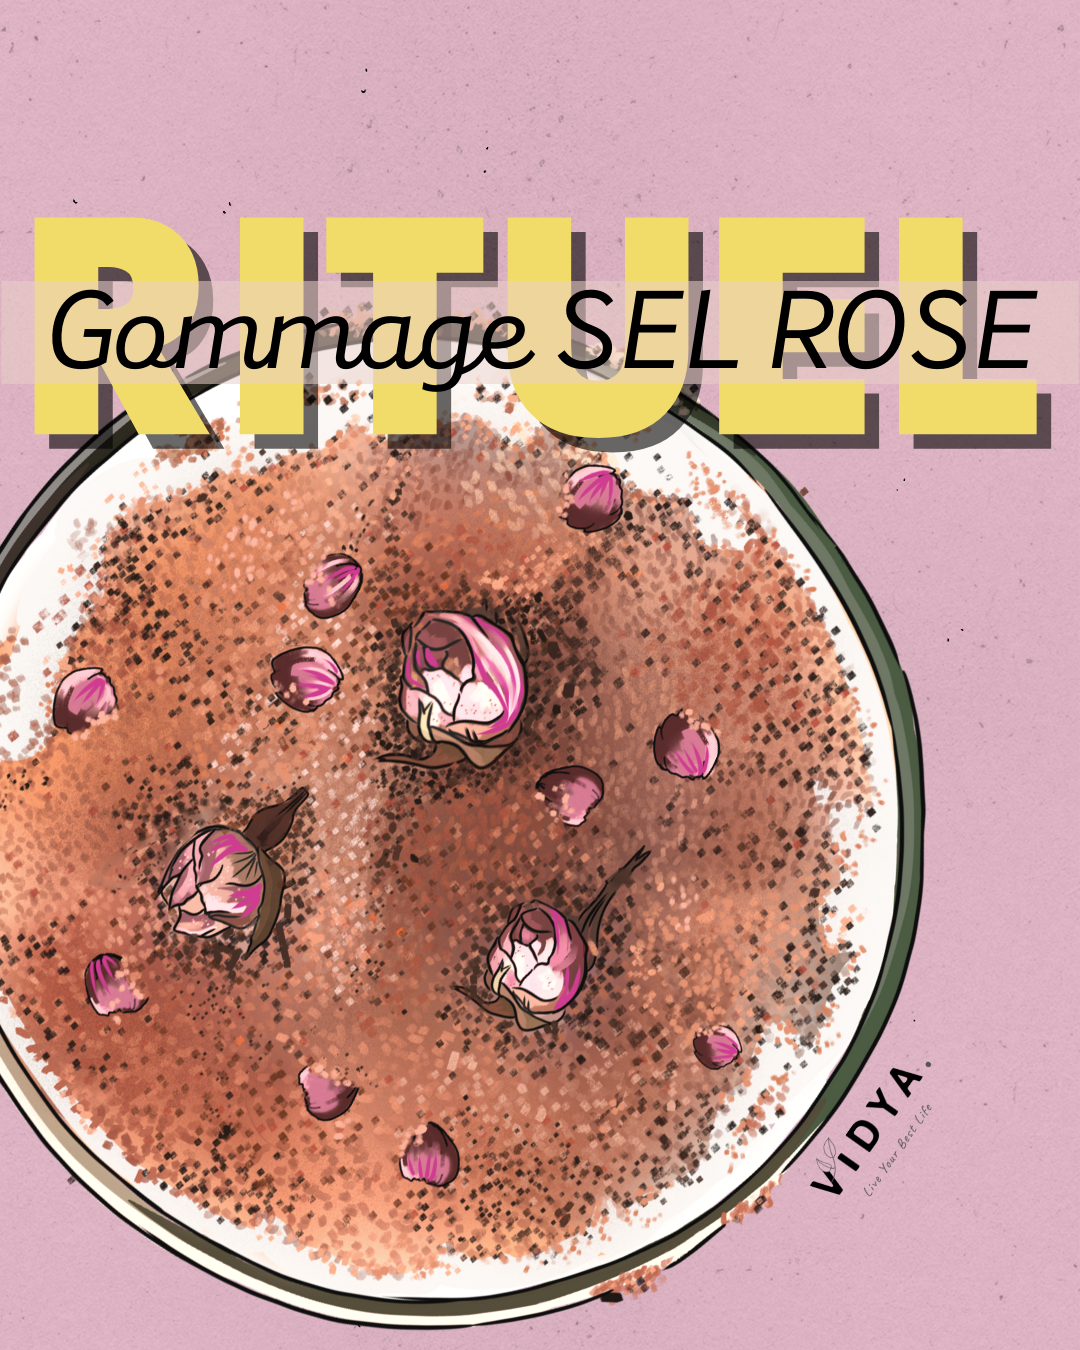 Gommage sel rose